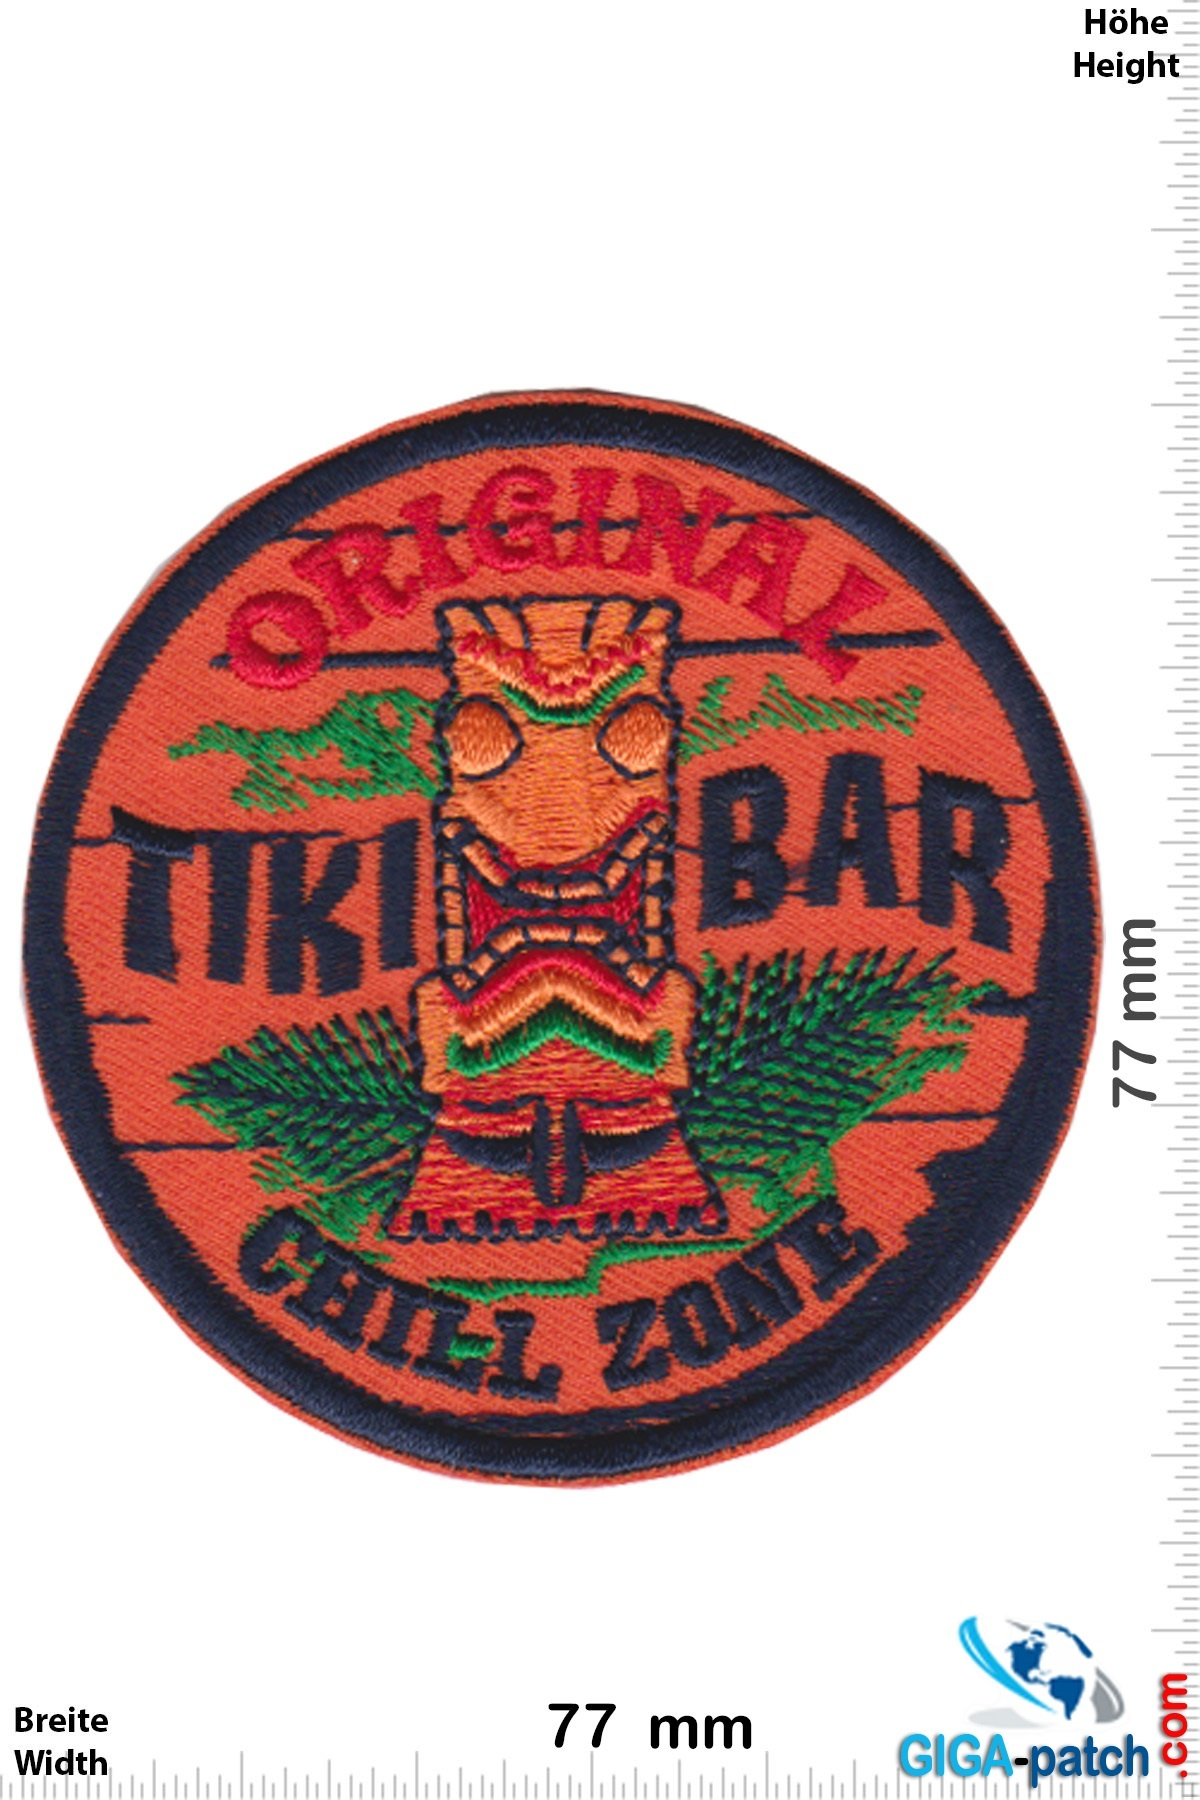 Tiki Bar Original Tiki Bar Chill Zone Patch Back Patches